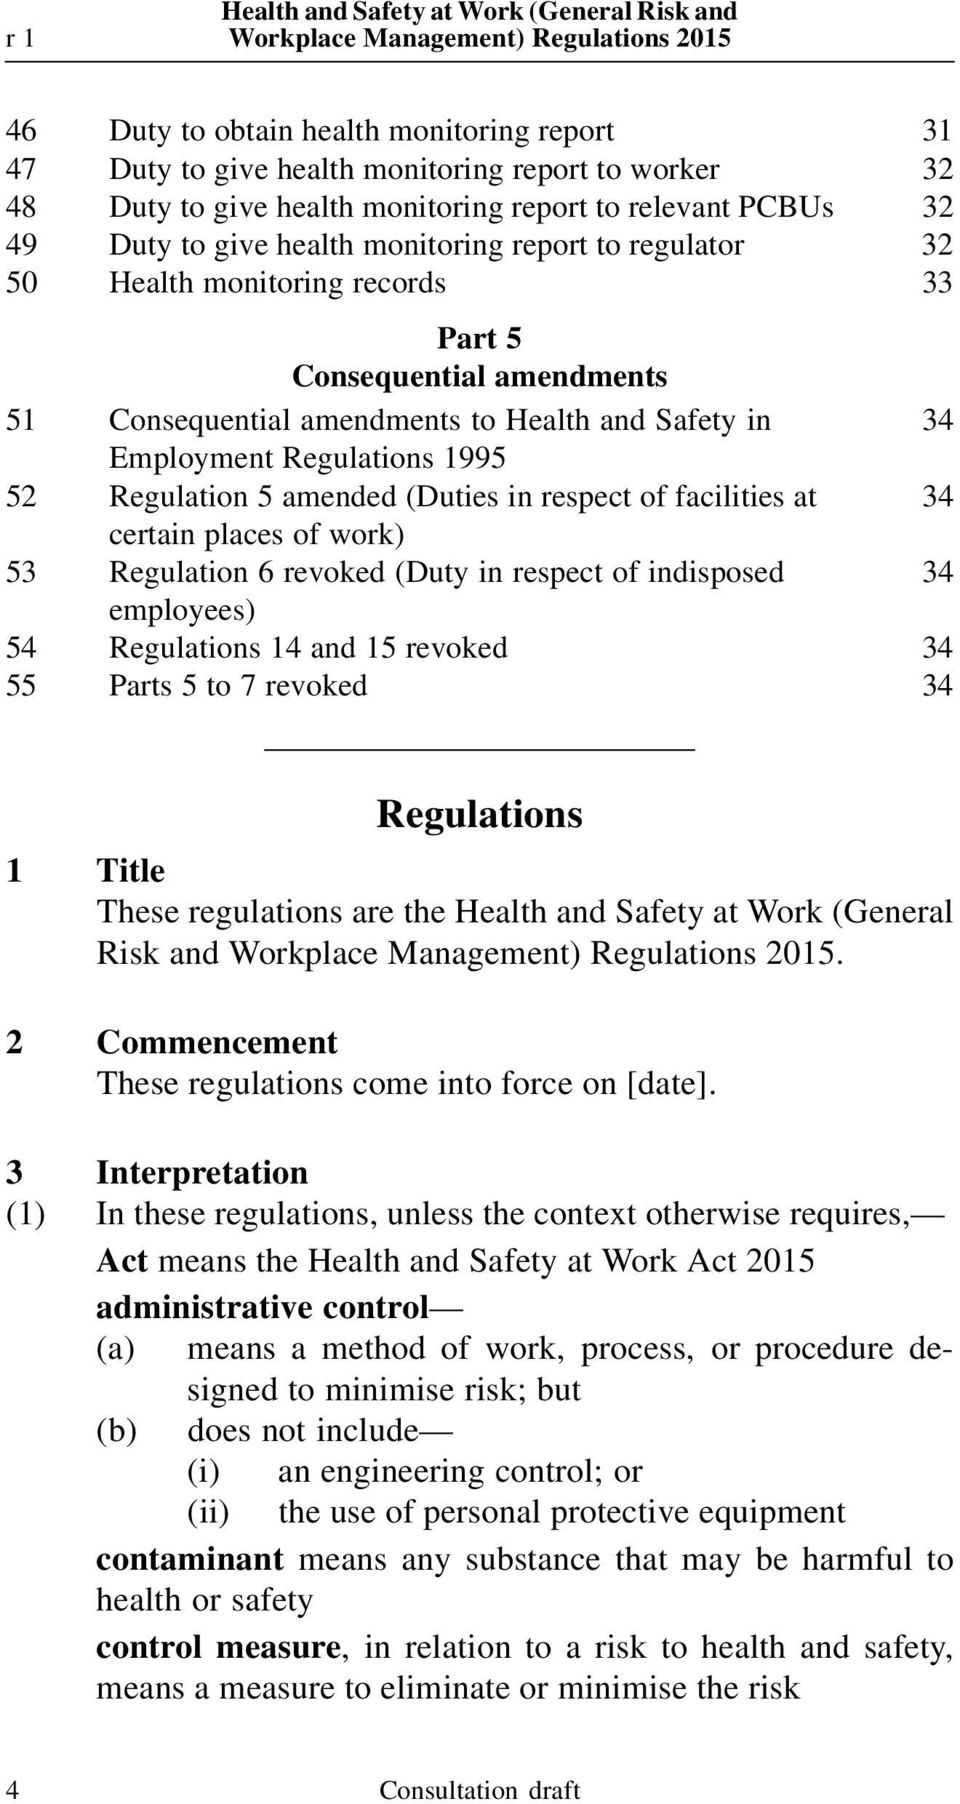 Regulations 1995 52 Regulation 5 amended (Duties in respect of facilities at 34 certain places of work) 53 Regulation 6 revoked (Duty in respect of indisposed 34 employees) 54 Regulations 14 and 15